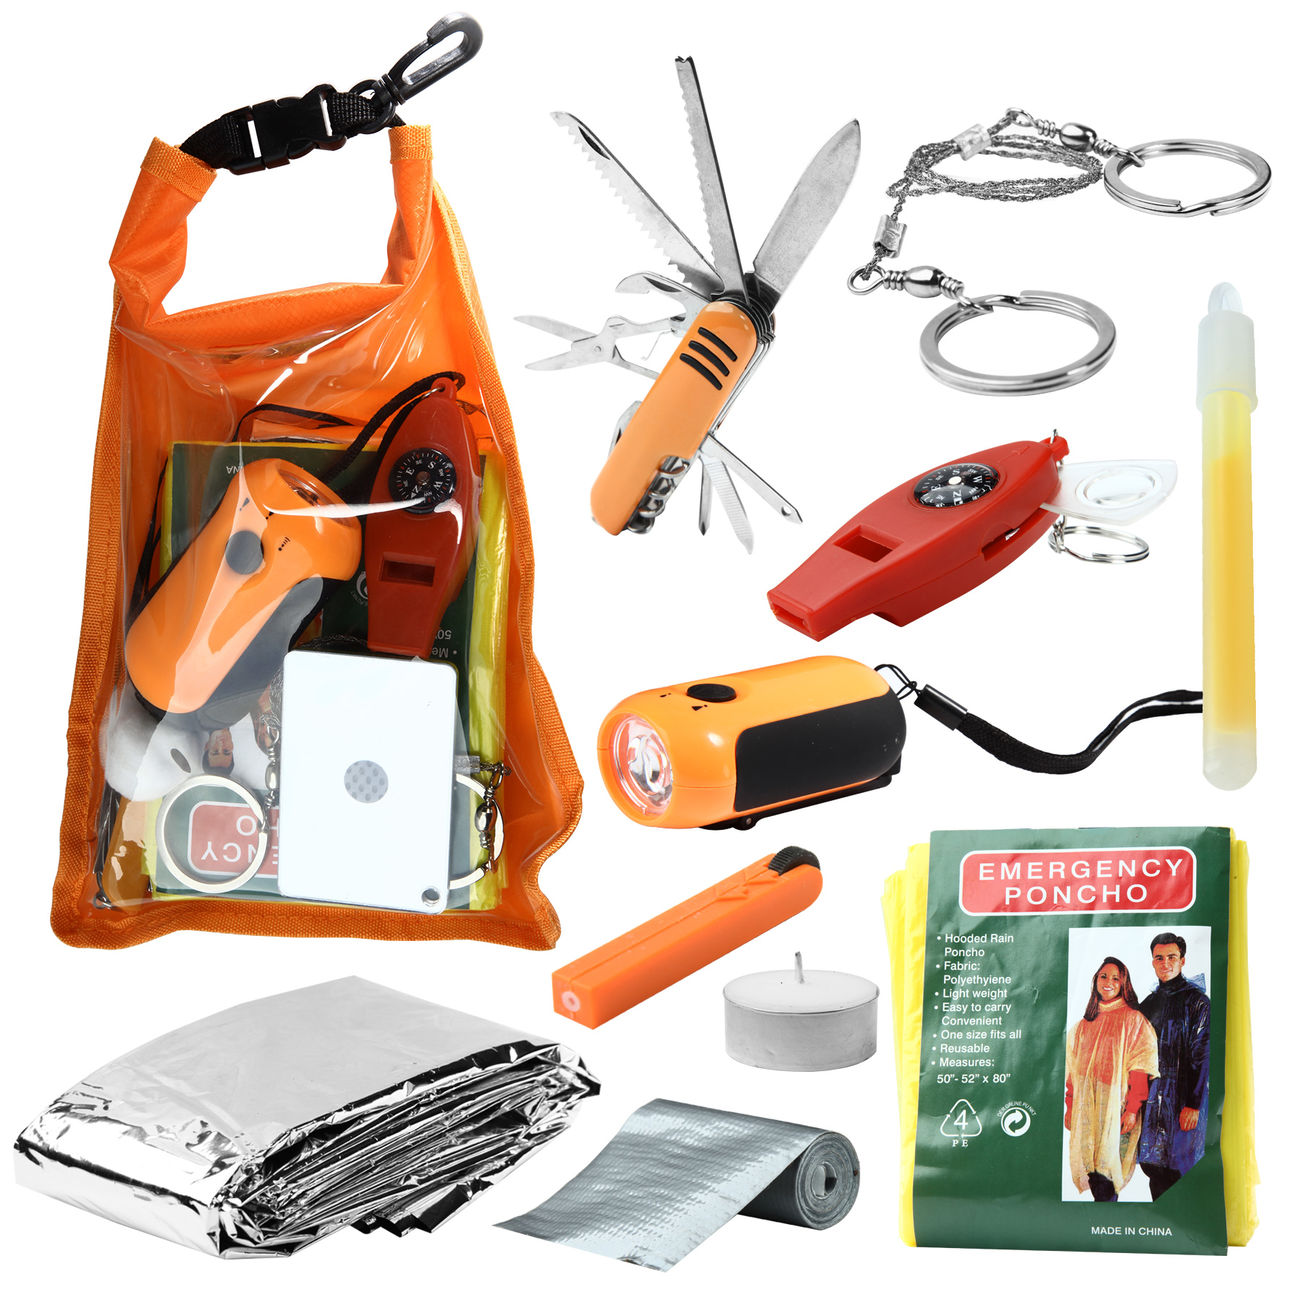 Mil-Tec Outdoor-Survival-Pack large orange 0